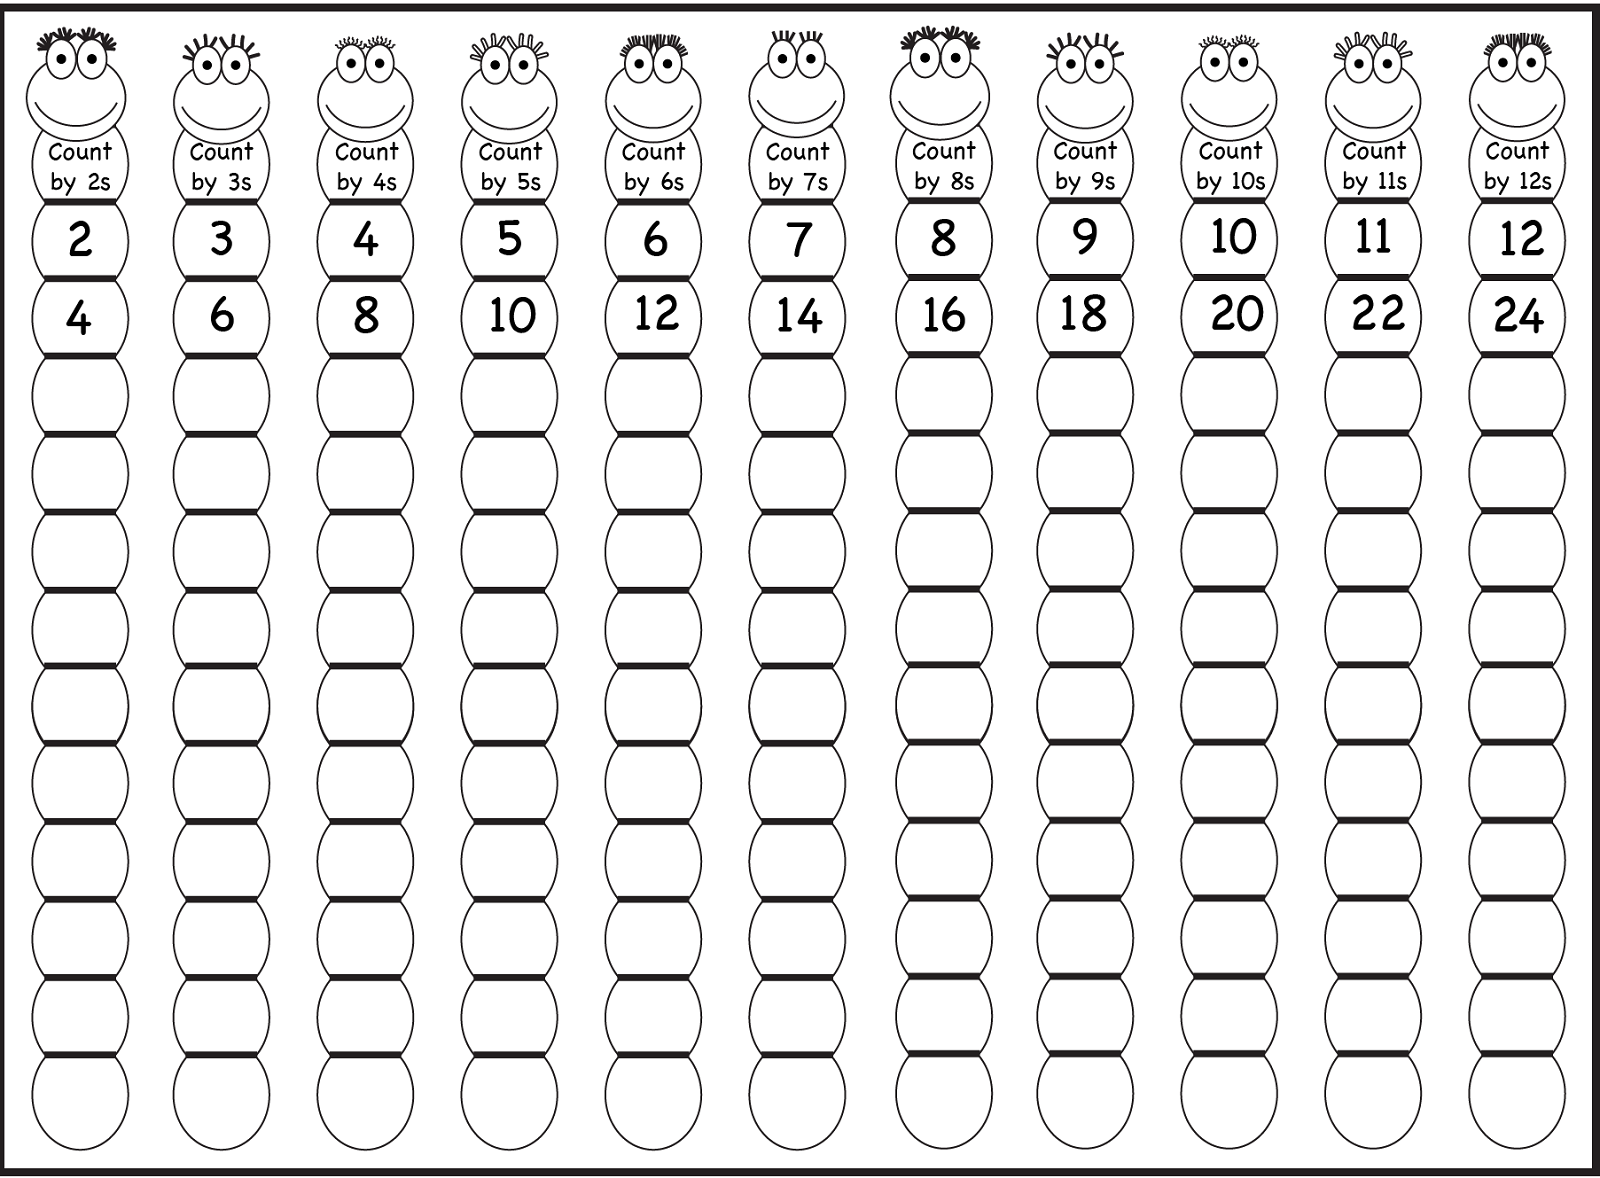 Skip Count By 5 Worksheet 2016 Kiddo Shelter Math Counting Free